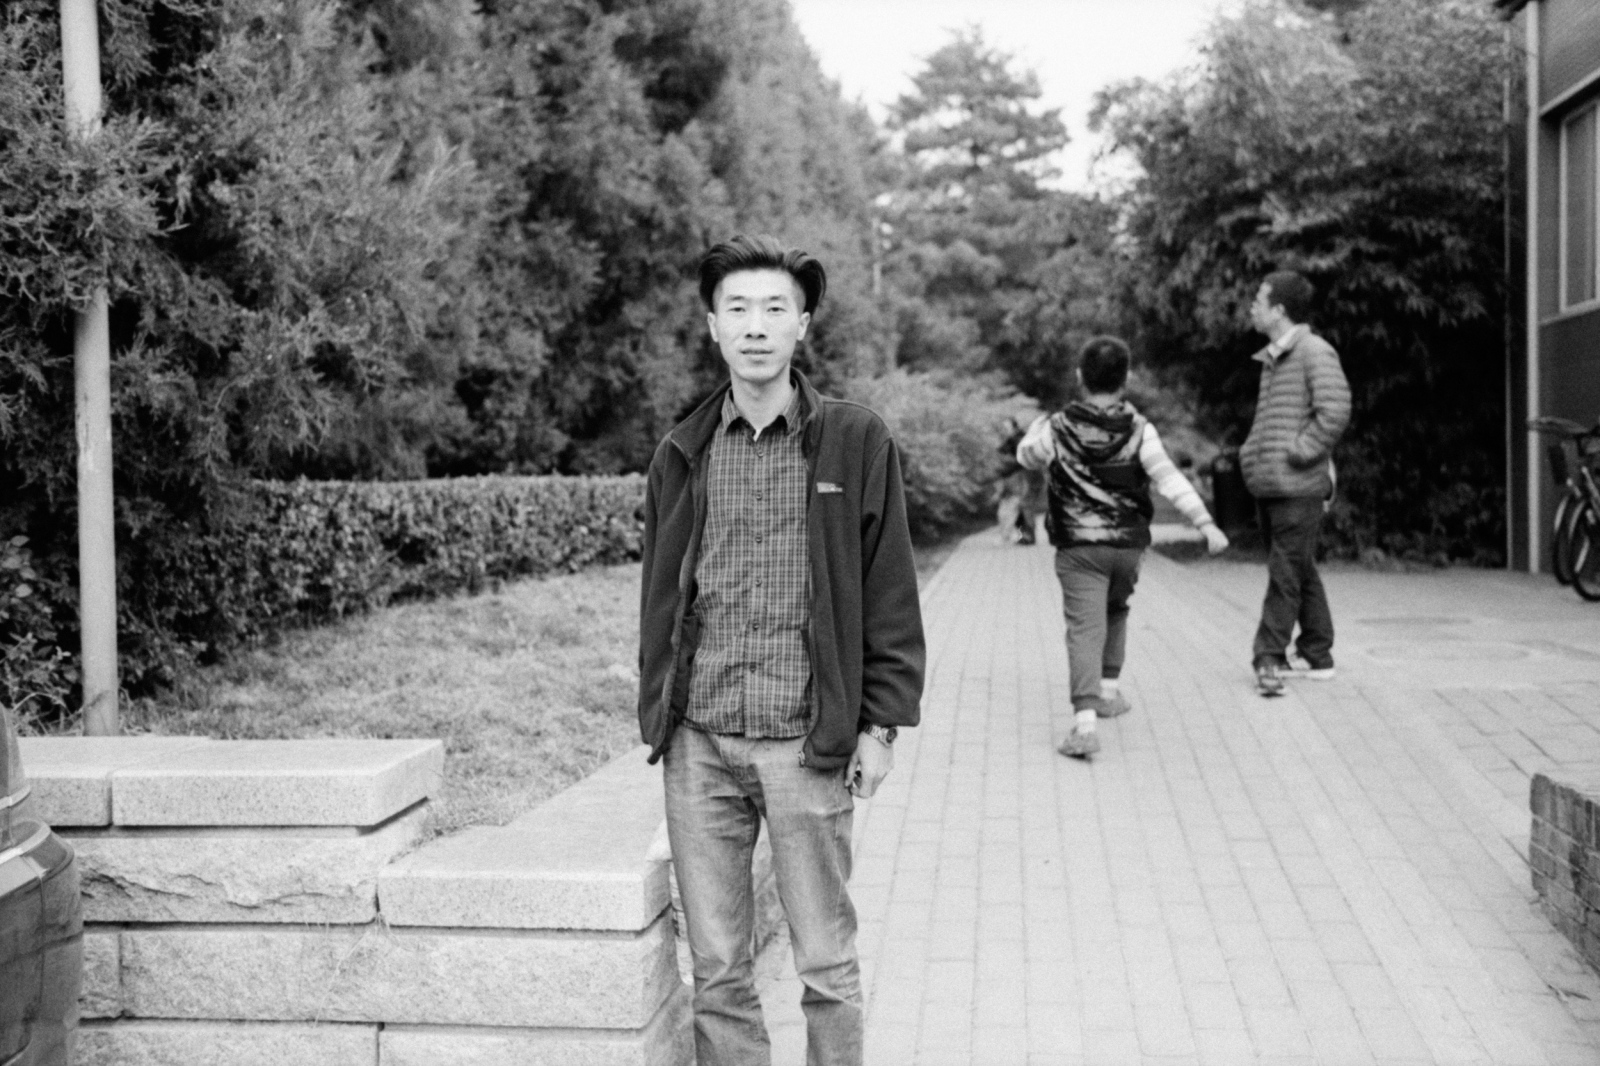 A man who allowed me to photograph on street near Andingmen. Beijing, China. 2015